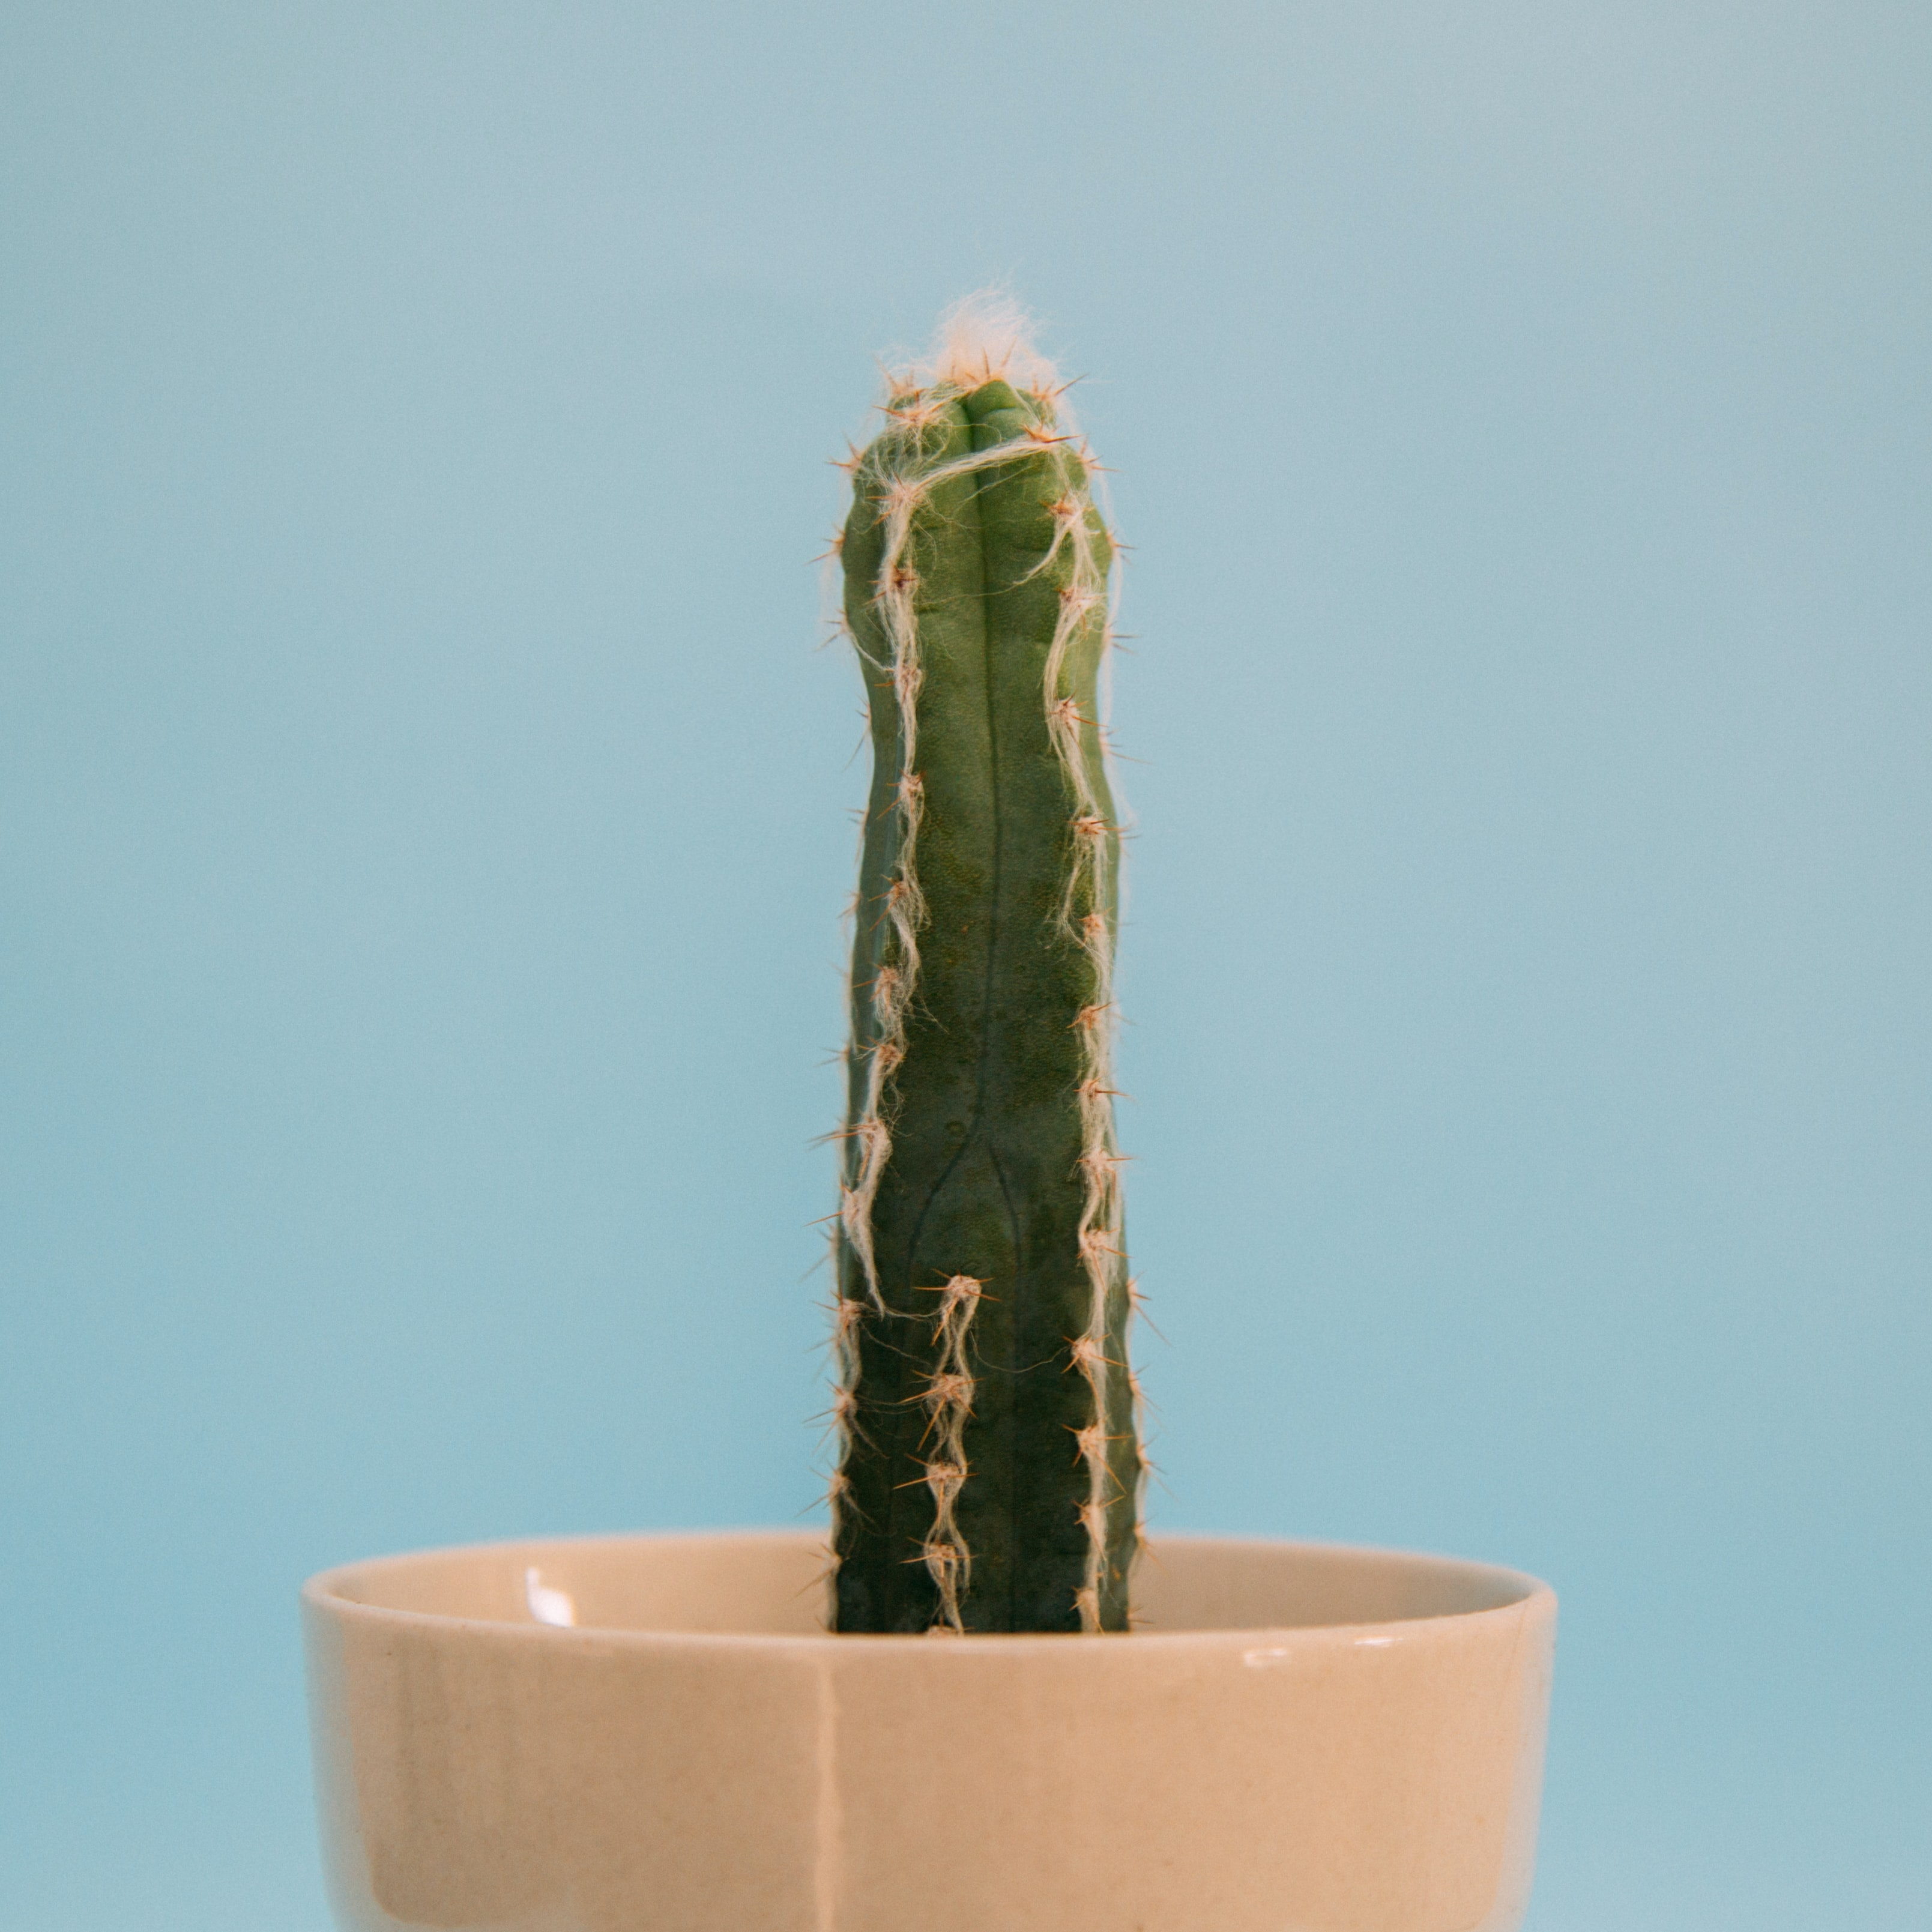 green cactus on white ceramic pot